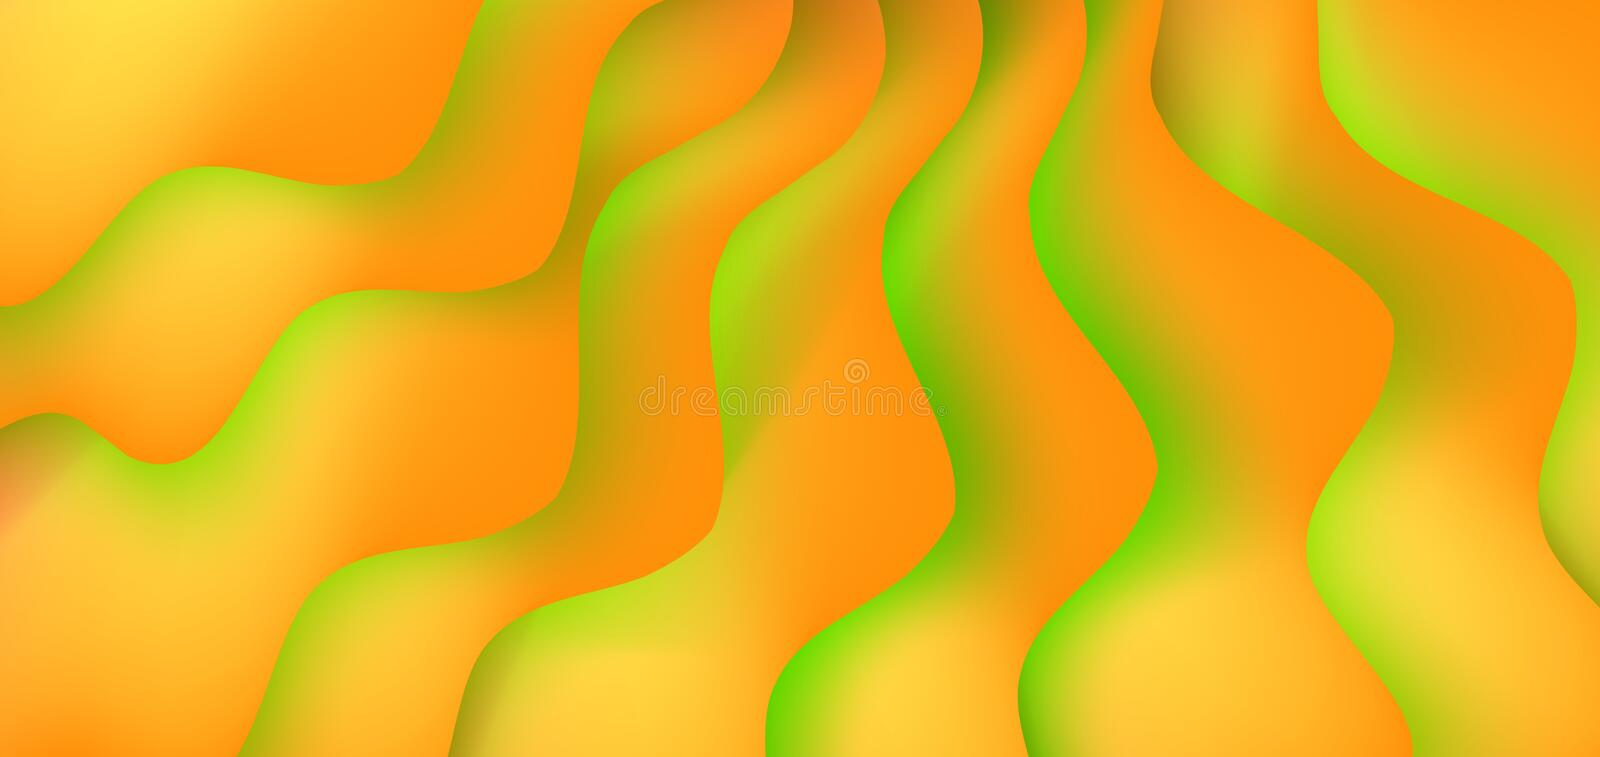 Abstract background with expressive yellow and green wave motion flow and liquid shapes composition. Gradient fluid abstract background template, vector stock illustration